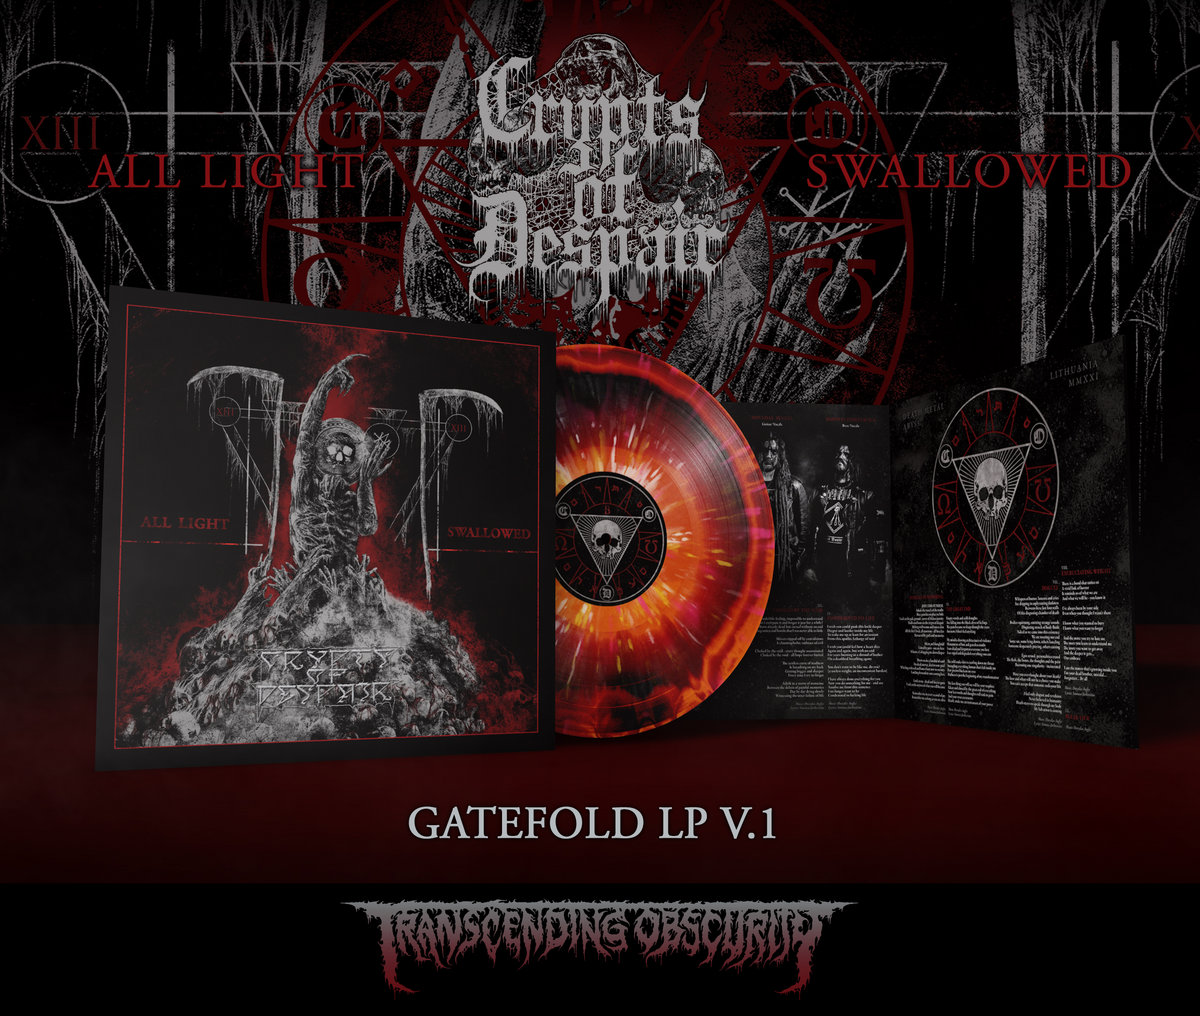 CRYPTS OF DESPAIR - All Light Swallowed Gatefold LP with Sandalwood Scent (Limited to 100 per variant)